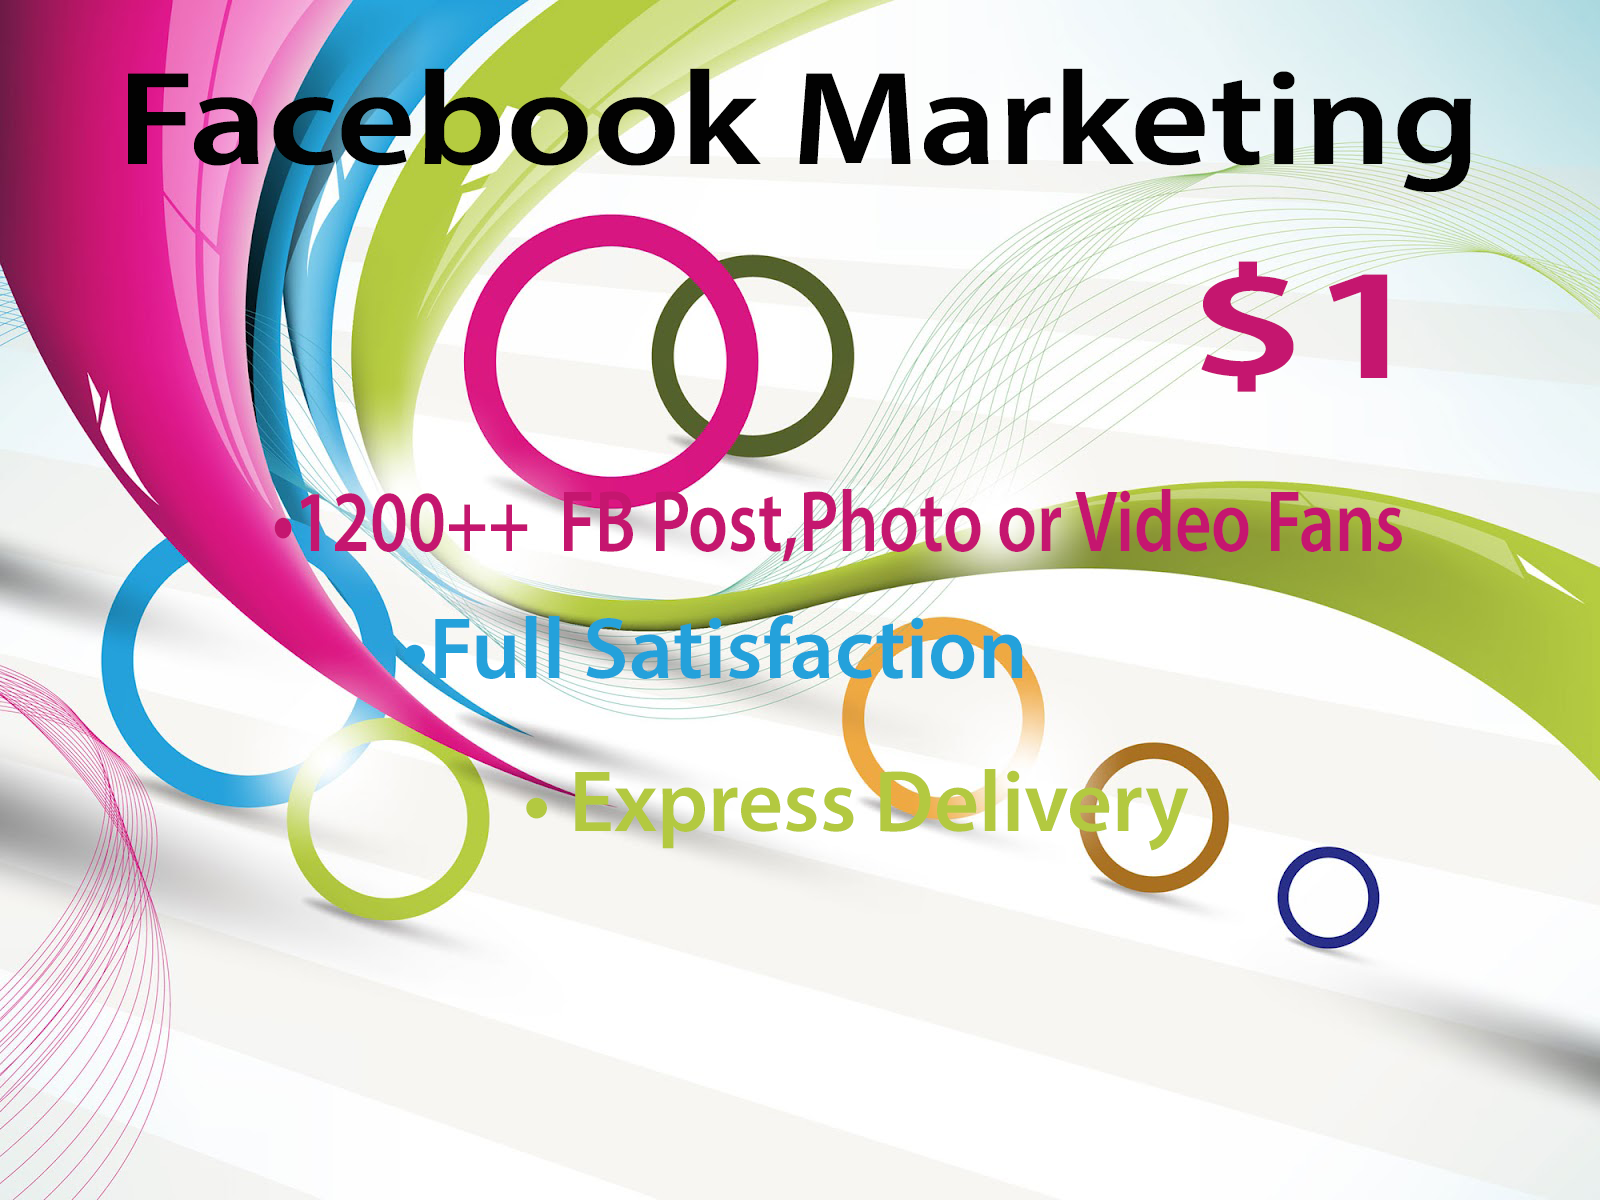 Facebook Marketing and Promotion with Guaranteed Res... for $1